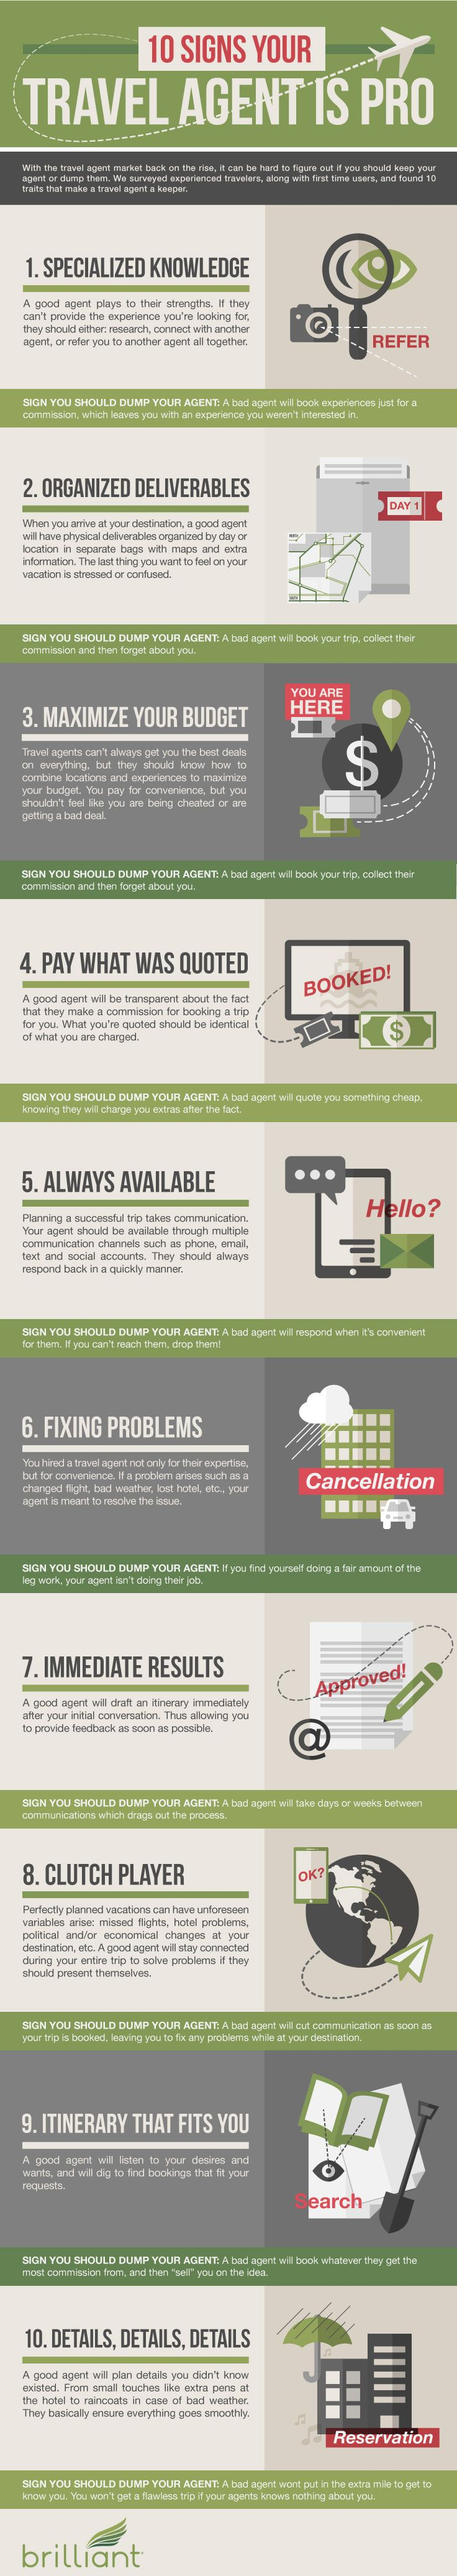 10 Signs Your Travel Agent is Pro